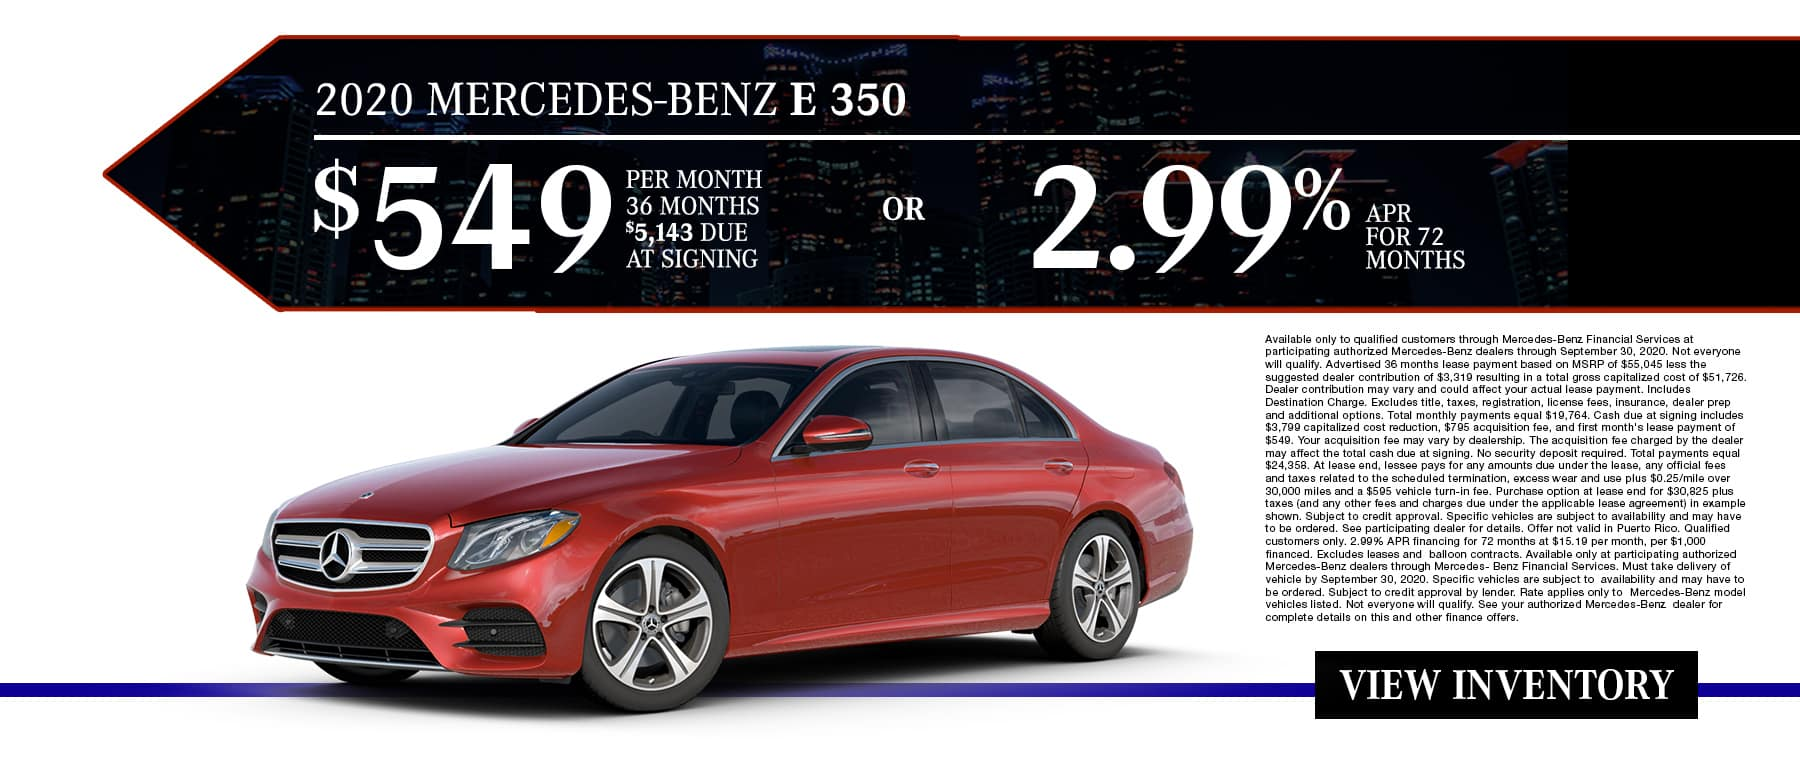 New 2020 Mercedes-Benz E 350 | $549/Mo for 36 Months With $5,143 Due At Signing OR 2.99% APR For 72 Months